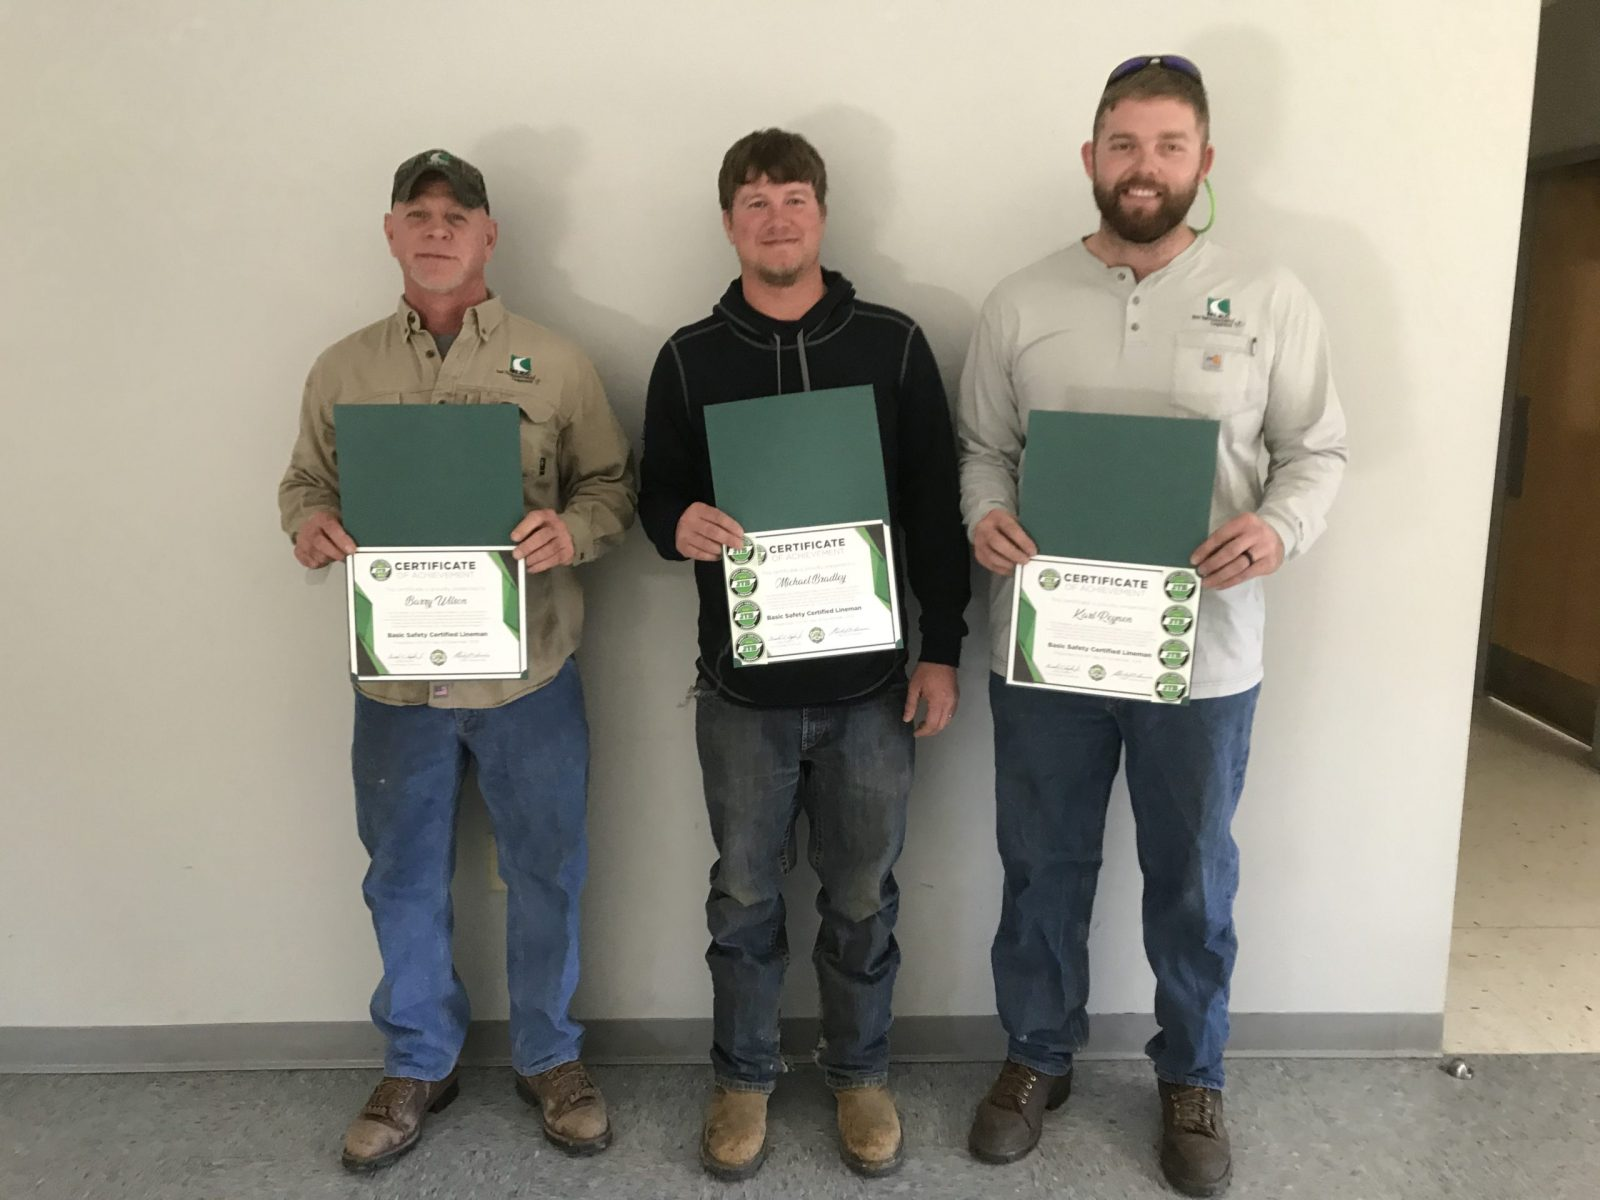 2019 Basic SCL Recipients Barry Wilson, Michael Bradley, and Karl Reynen from Meriwether Lewis Electric Cooperative